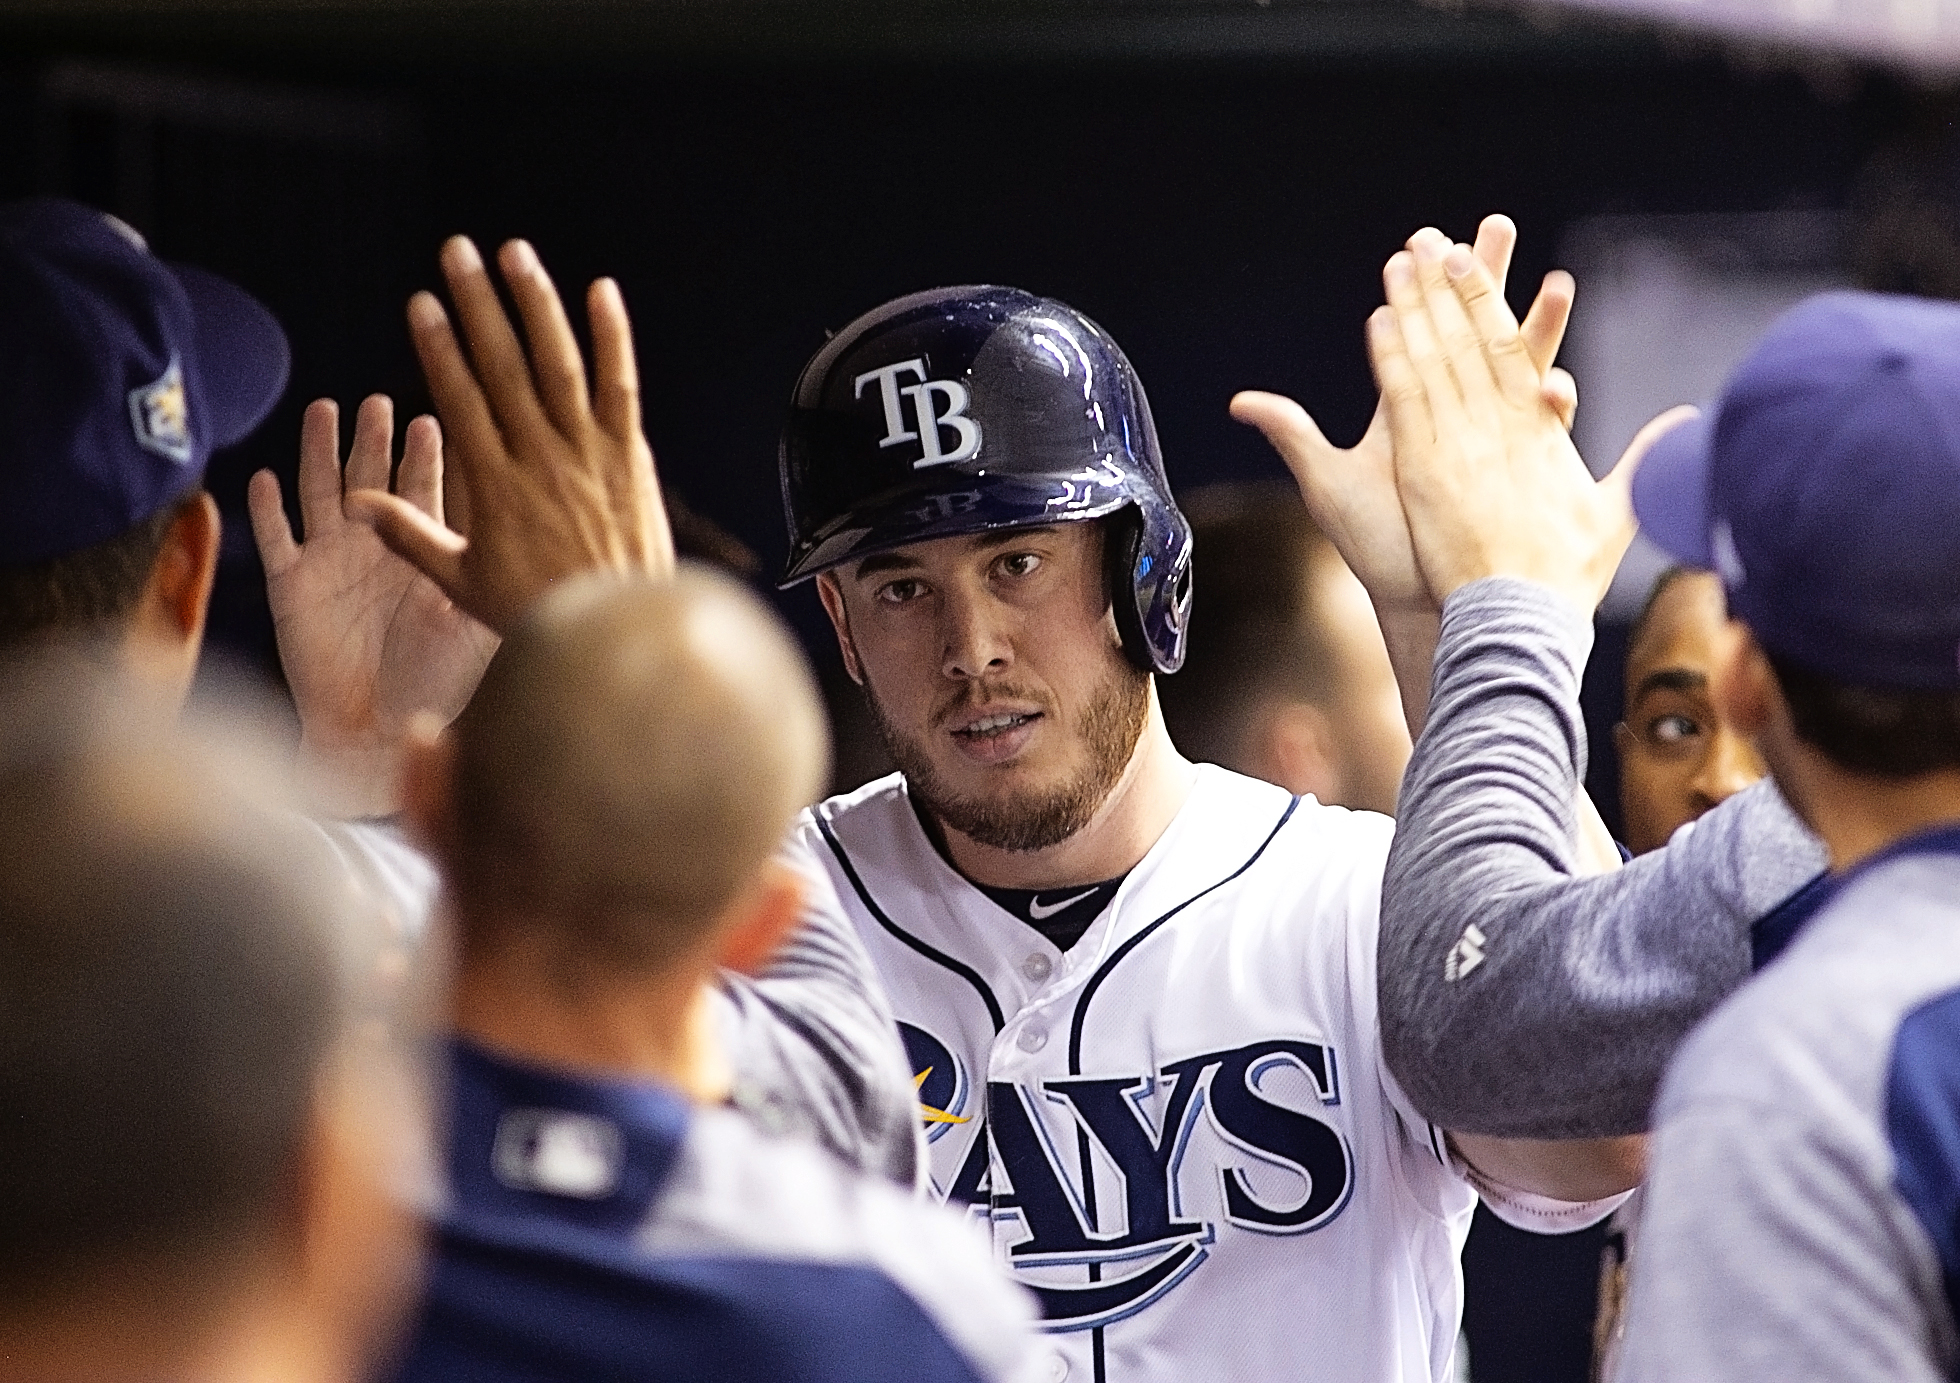 Cron had a sacrifice fly to pad the Rays' lead./CARMEN MANDATO